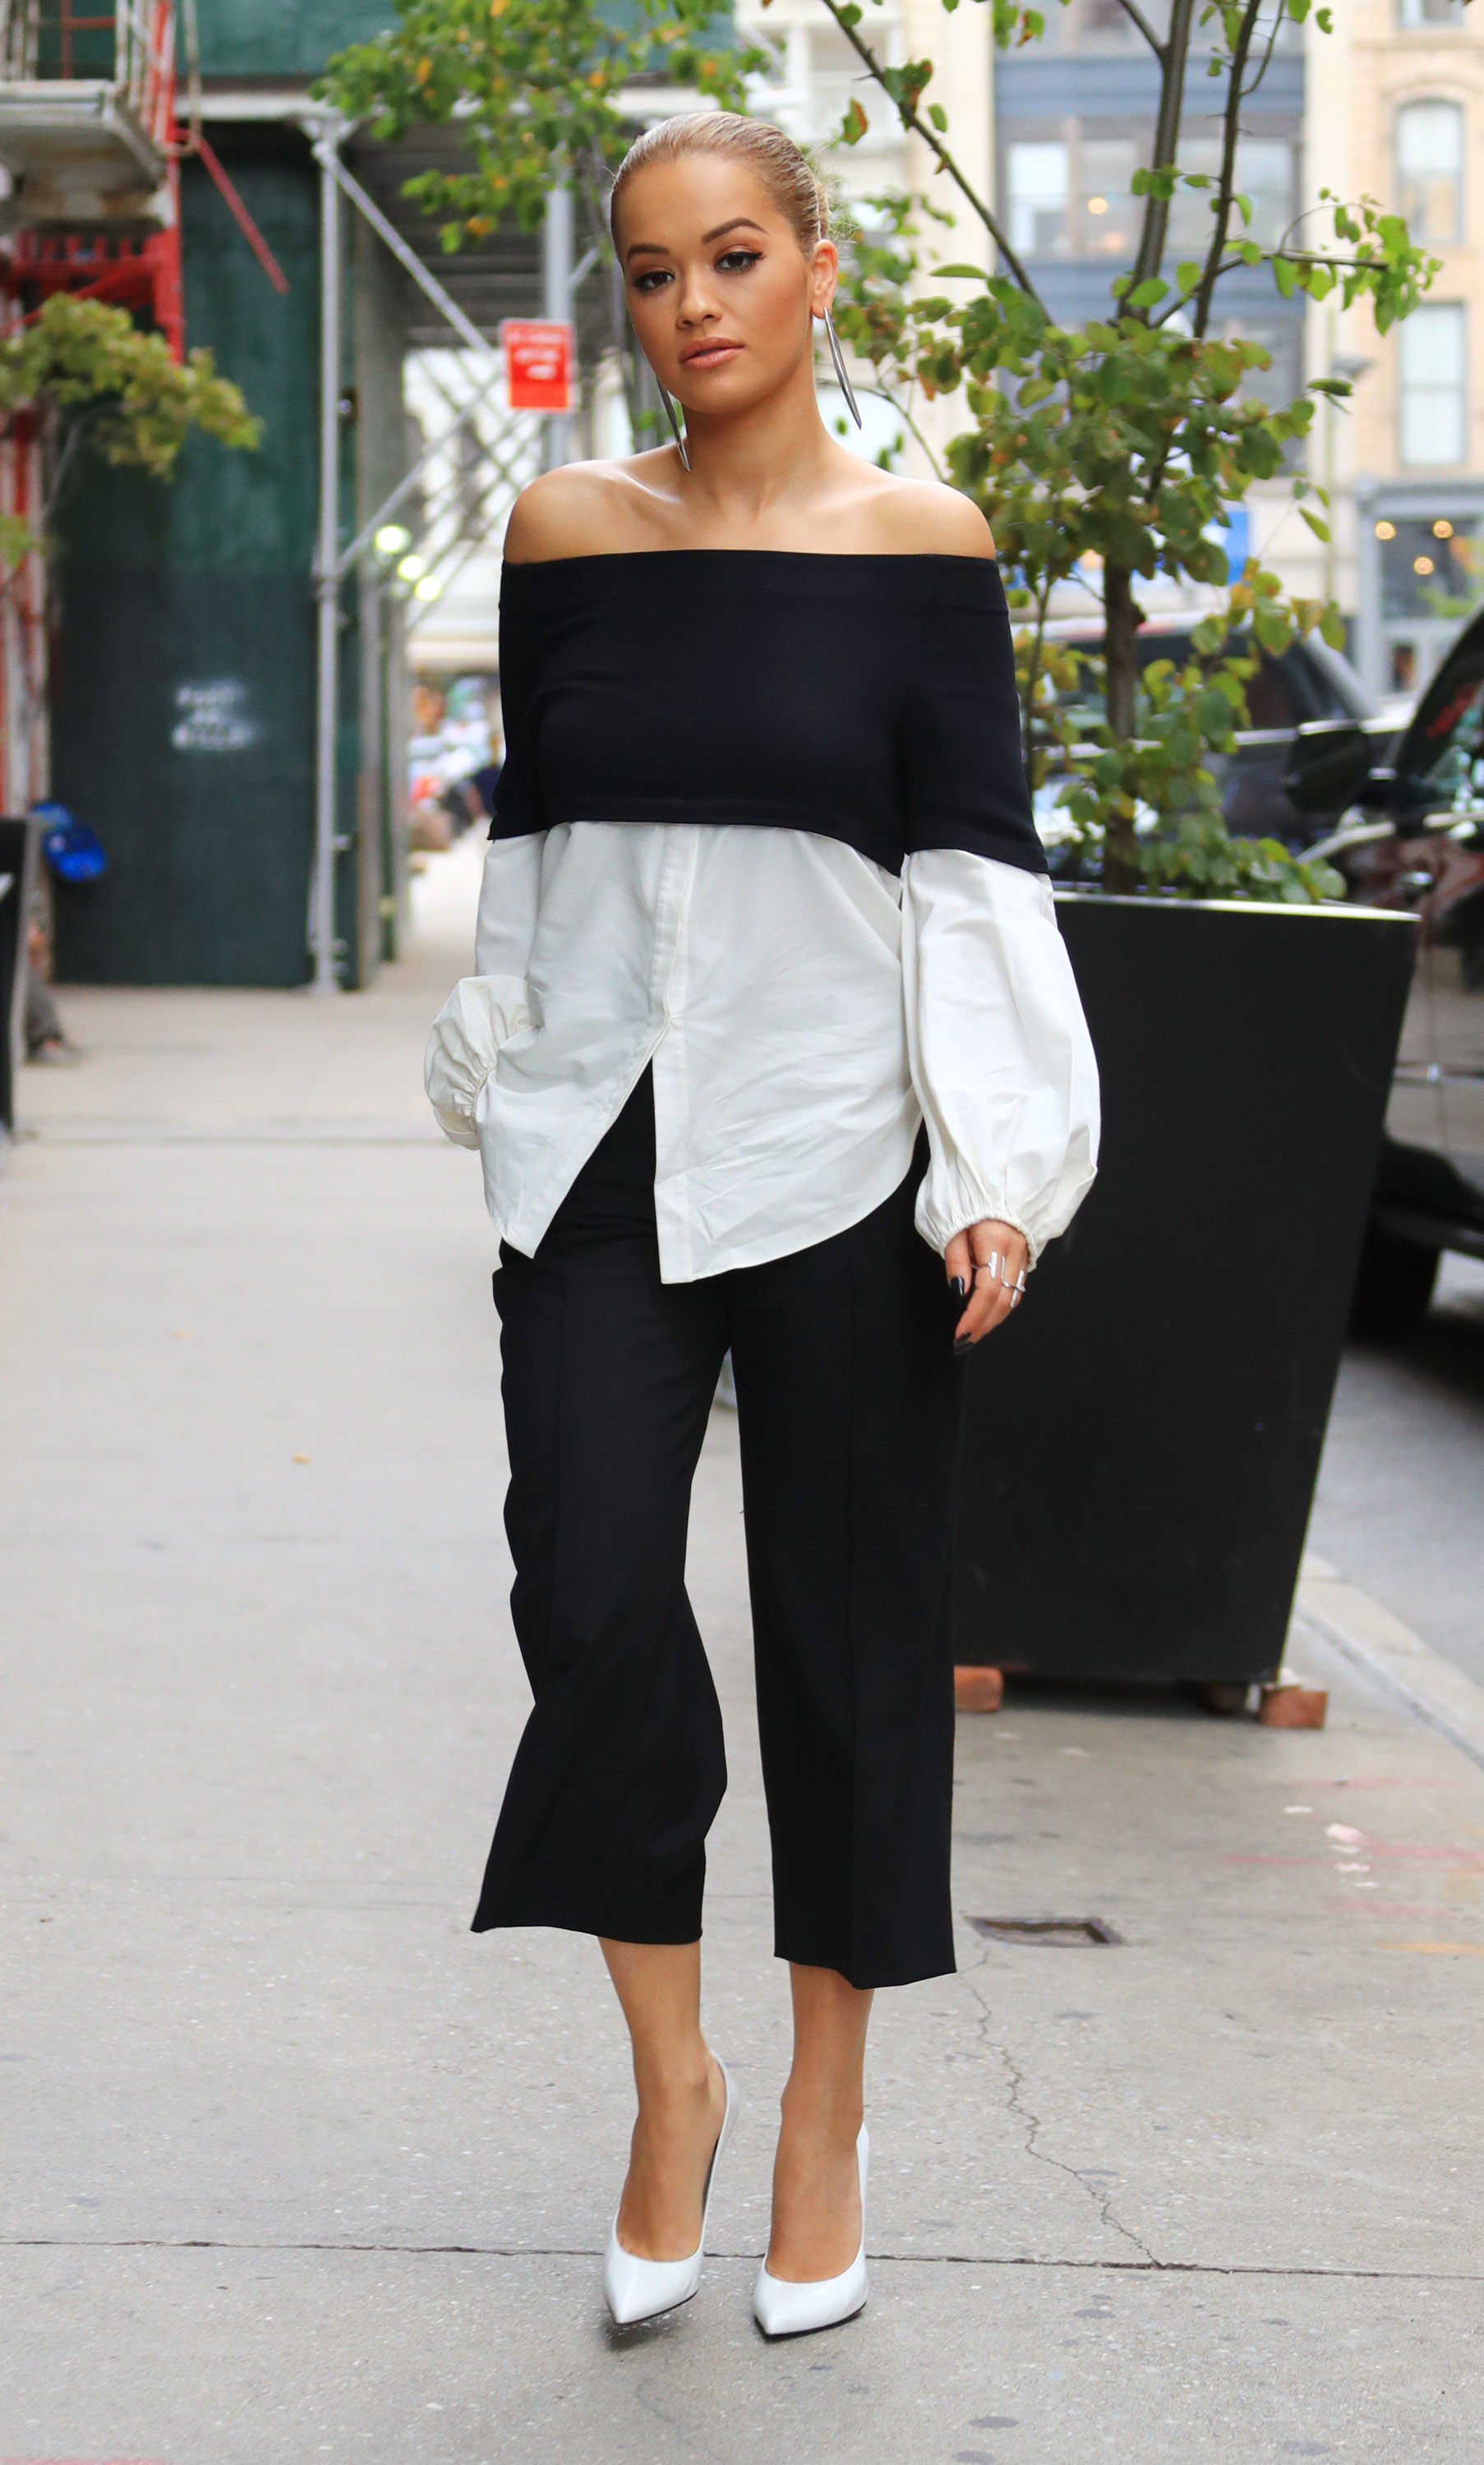 Rita Ora wears a glamorous outfit when out and about in New York <P> Pictured: Rita Ora <B>Ref: SPL1337871  190816  </B><BR/> Picture by: Jackson Lee/Splash News <BR/> </P><P> <B>Splash News and Pictures</B><BR/> Los Angeles:310-821-2666<BR/> New York:212-619-2666<BR/> London:870-934-2666<BR/> <span id=